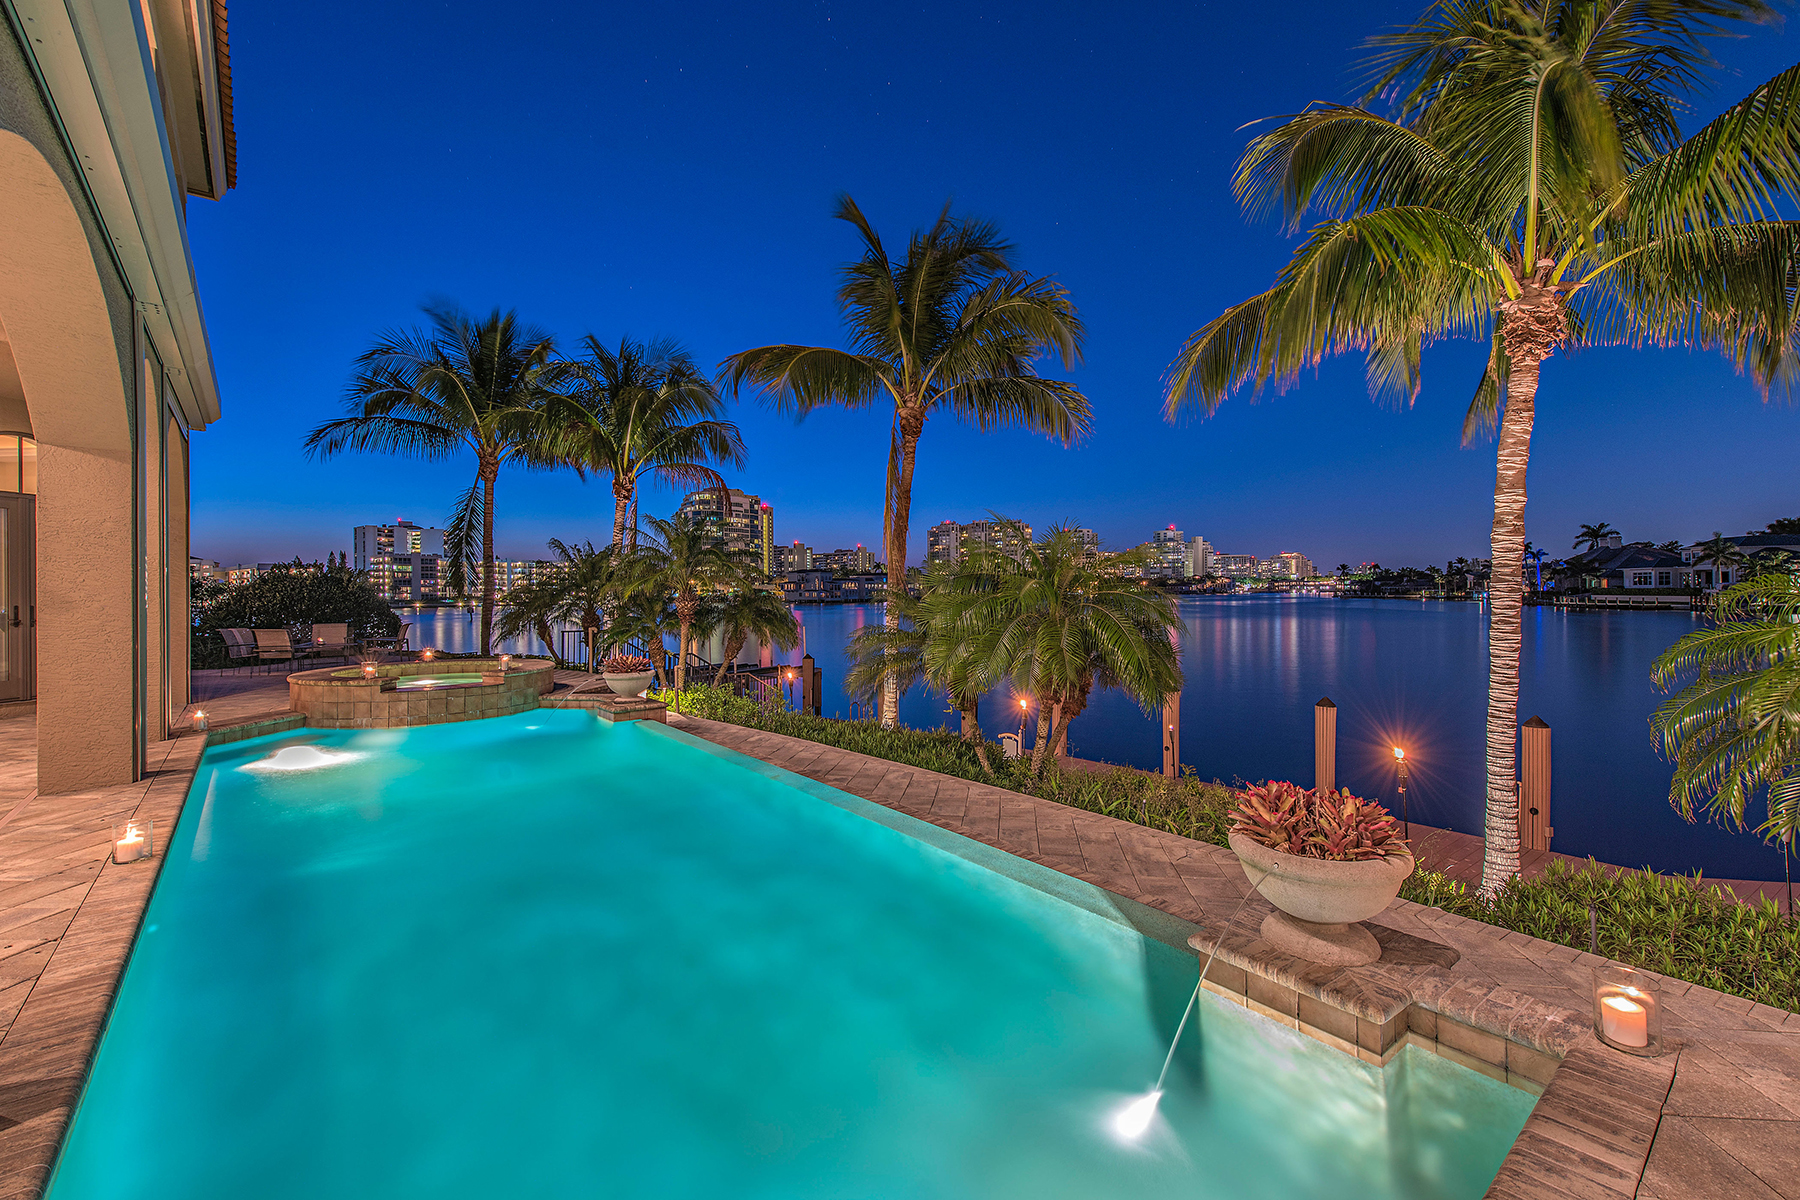 Single Family Home for Sale at MOORINGS 205 Bahia Pt, Naples, Florida 34103 United States